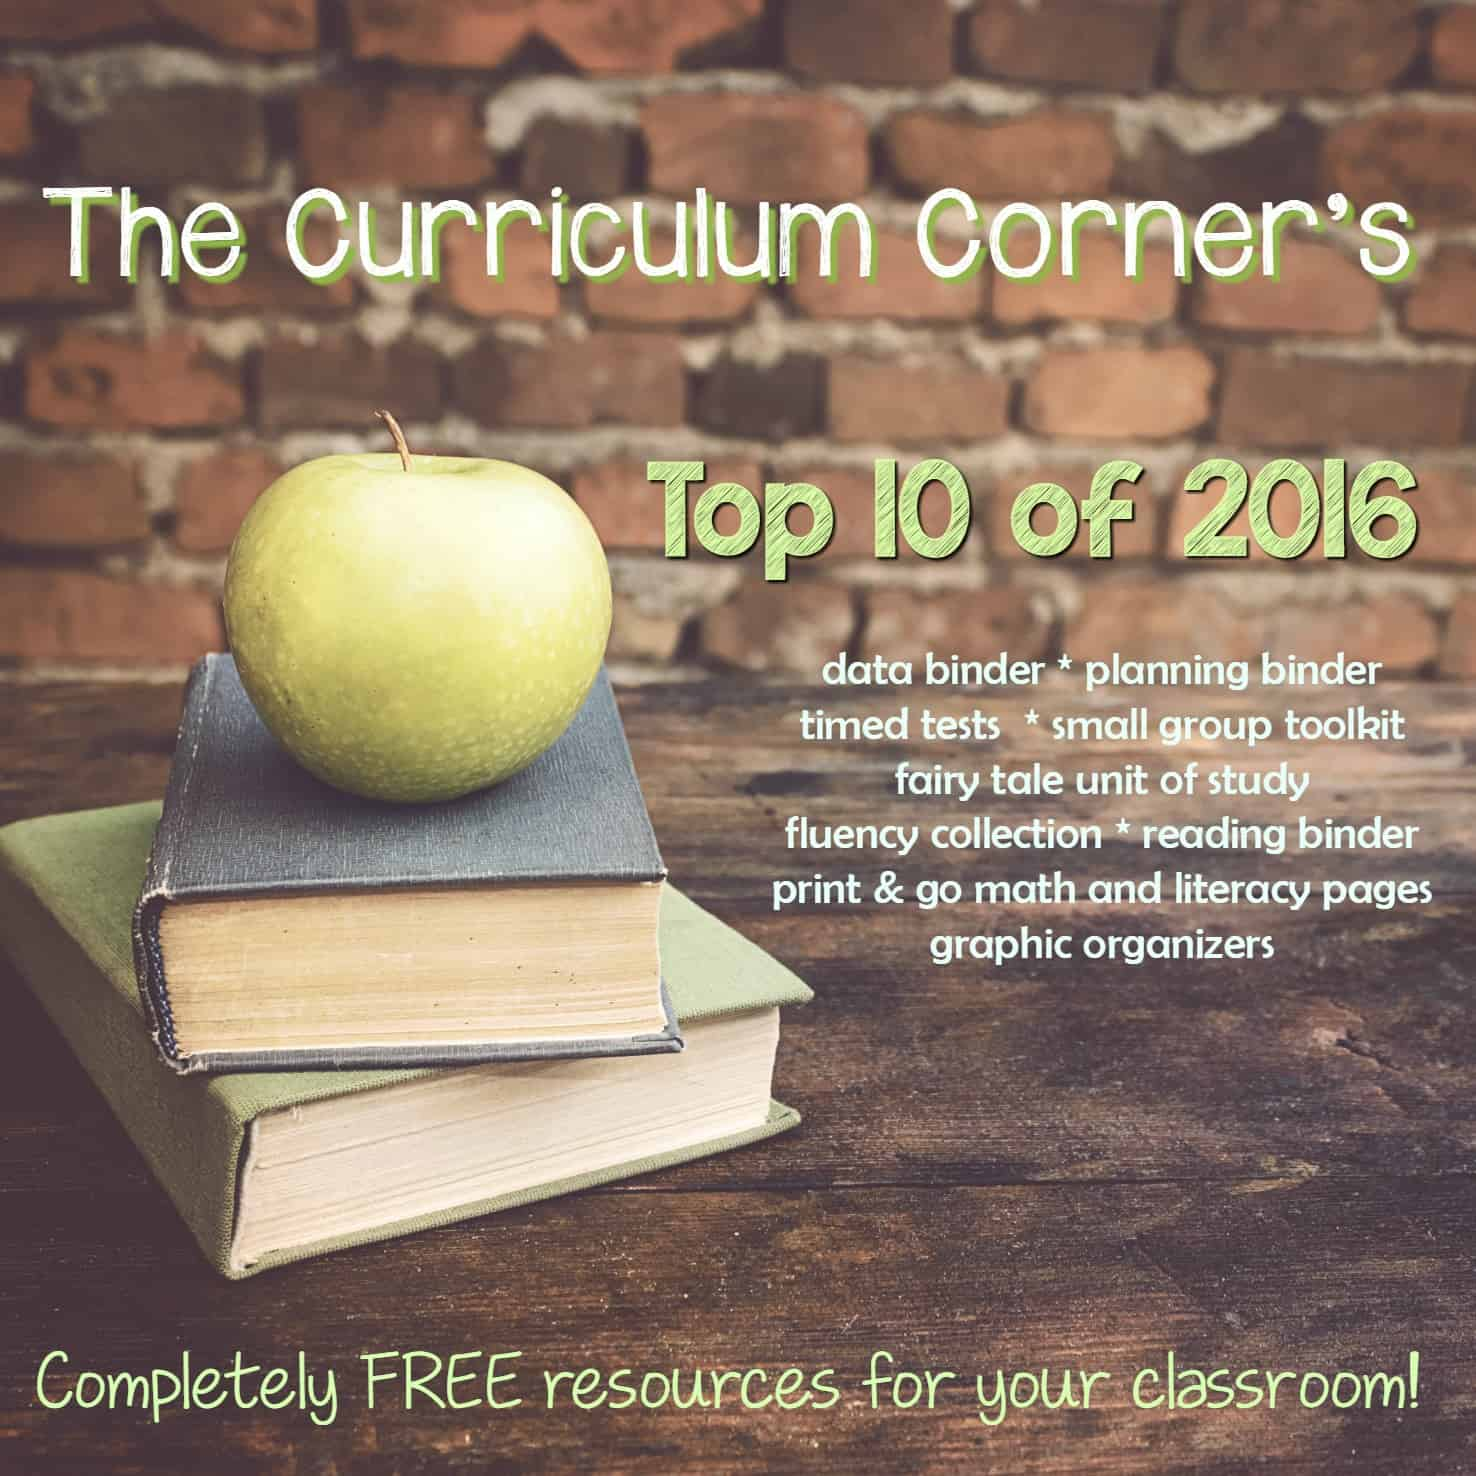 The Curriculum Corner's Top 10 of 2016